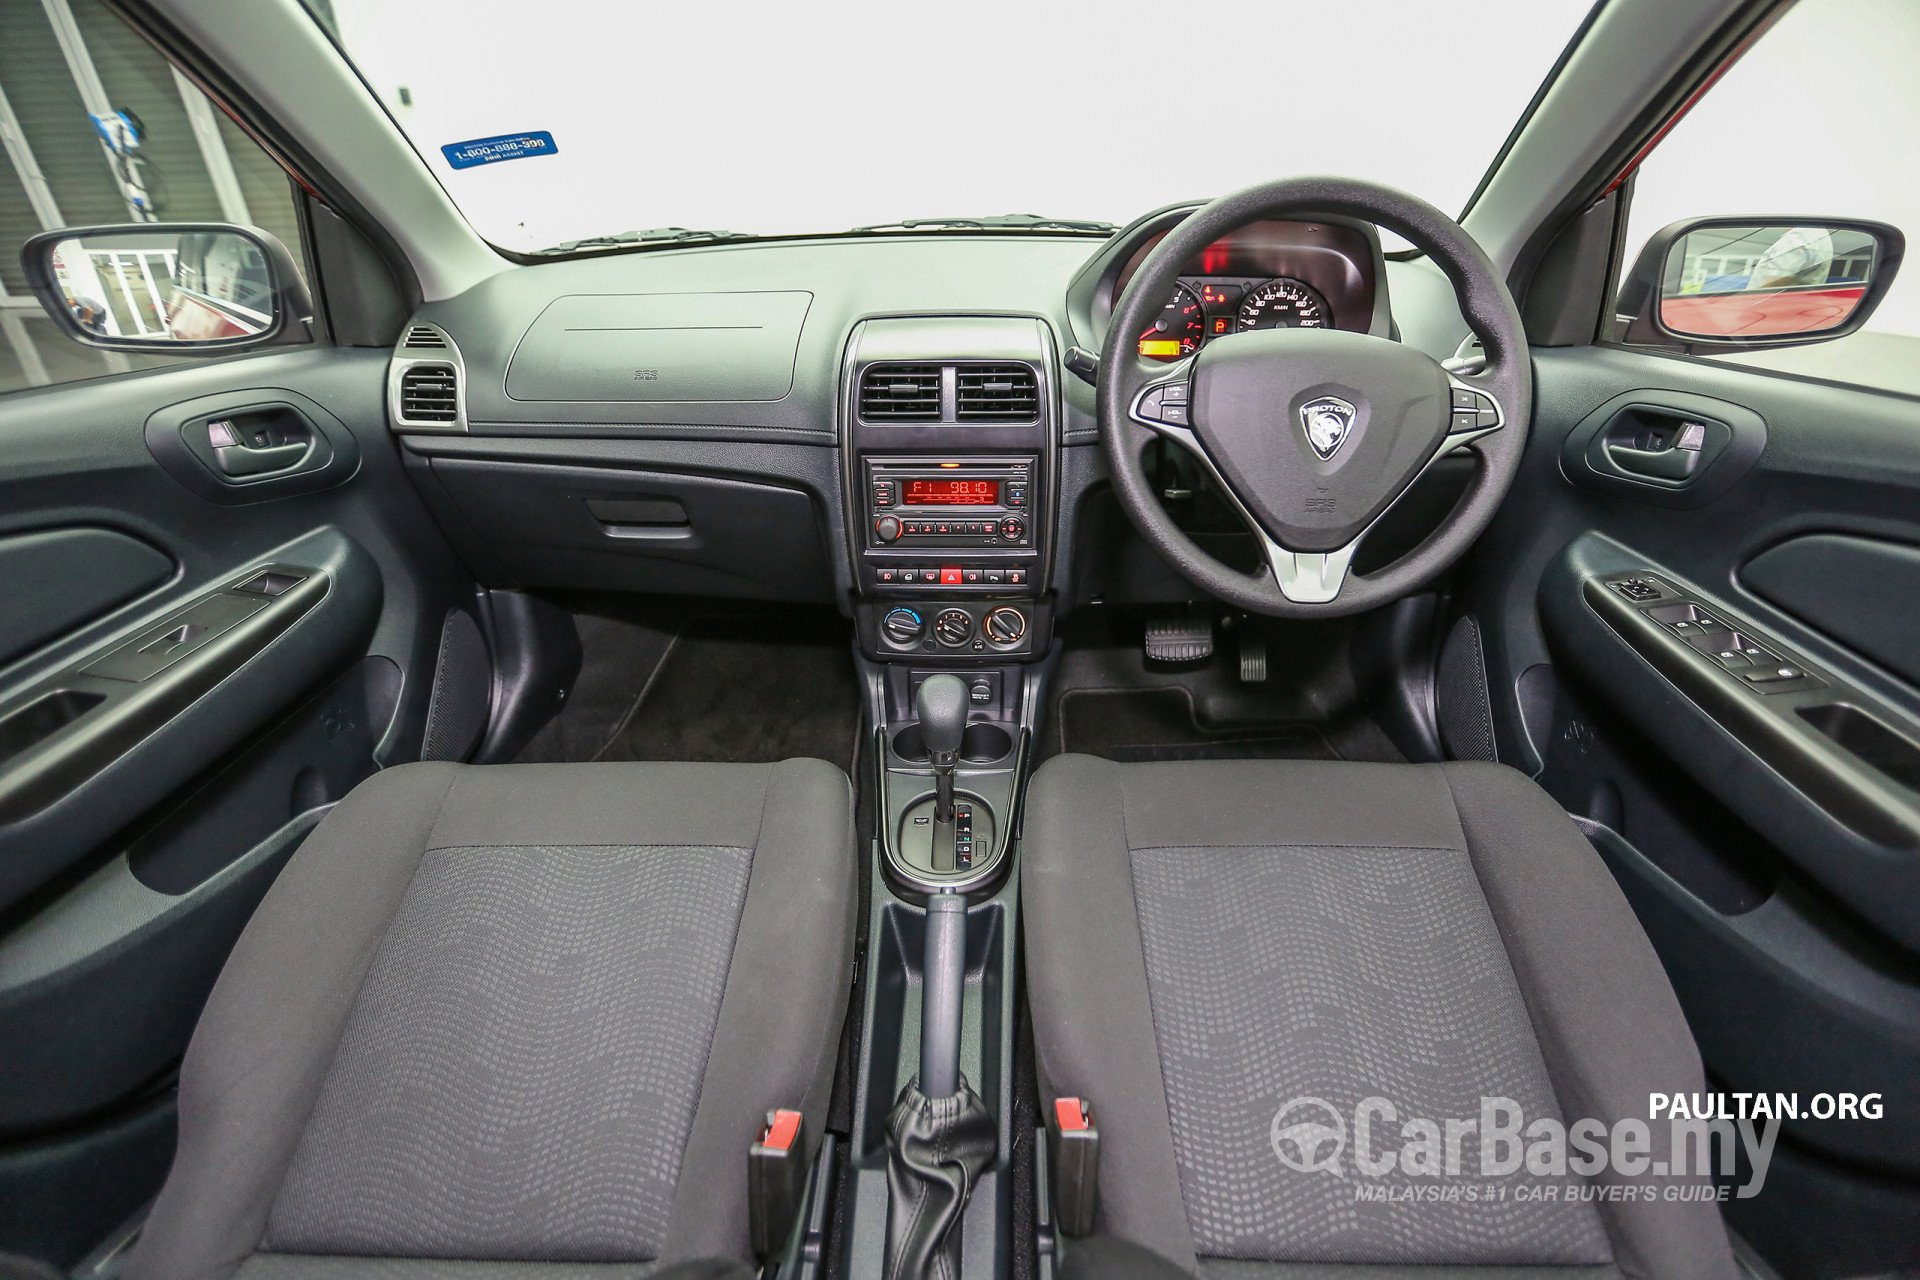 https://s1.carbase.my/upload/51/64/459/interior/s13-1475028552-5189-proton-saga.jpg